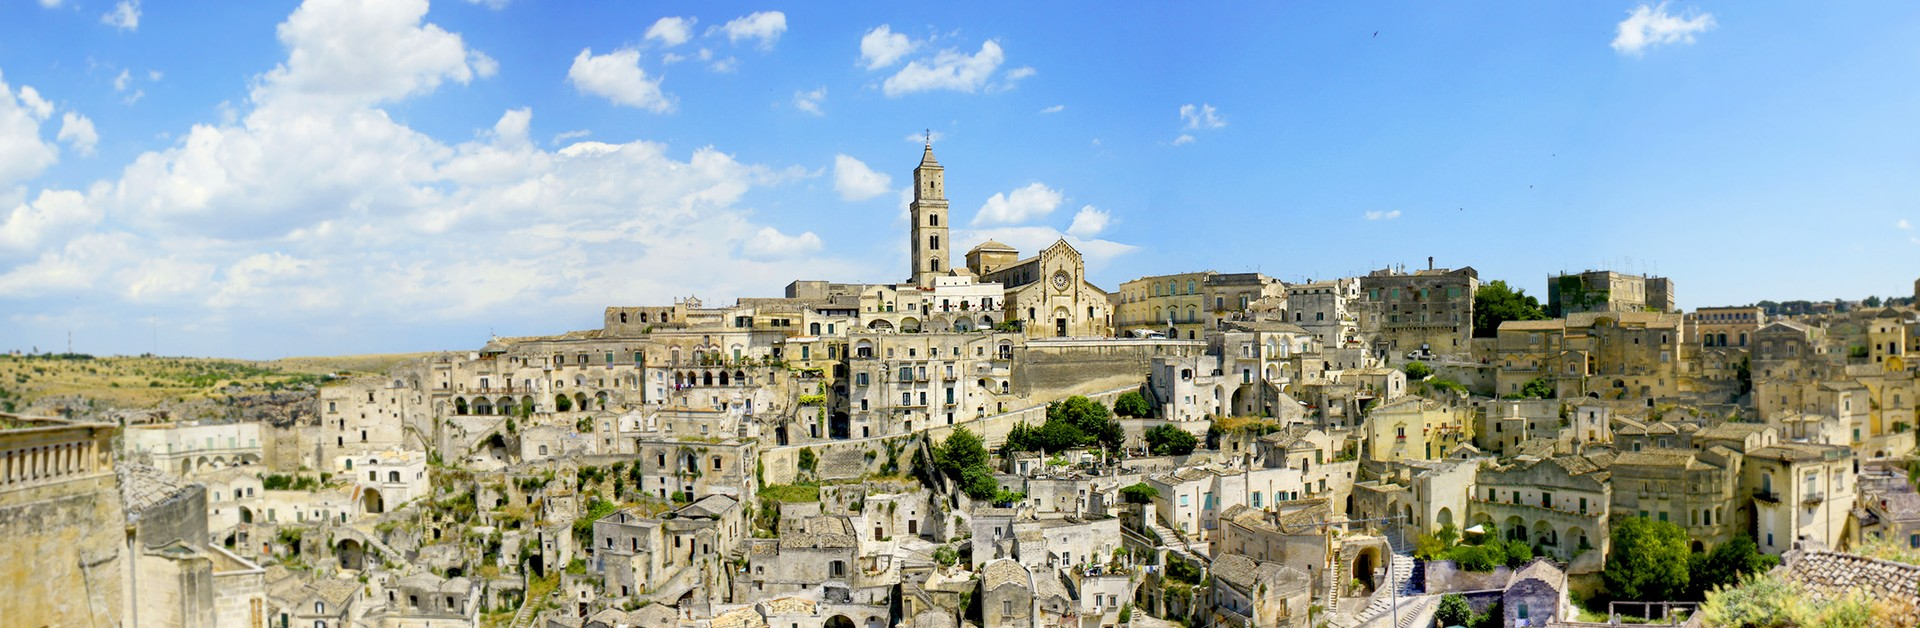 What to visit in Basilicata: 5 places not to be missed